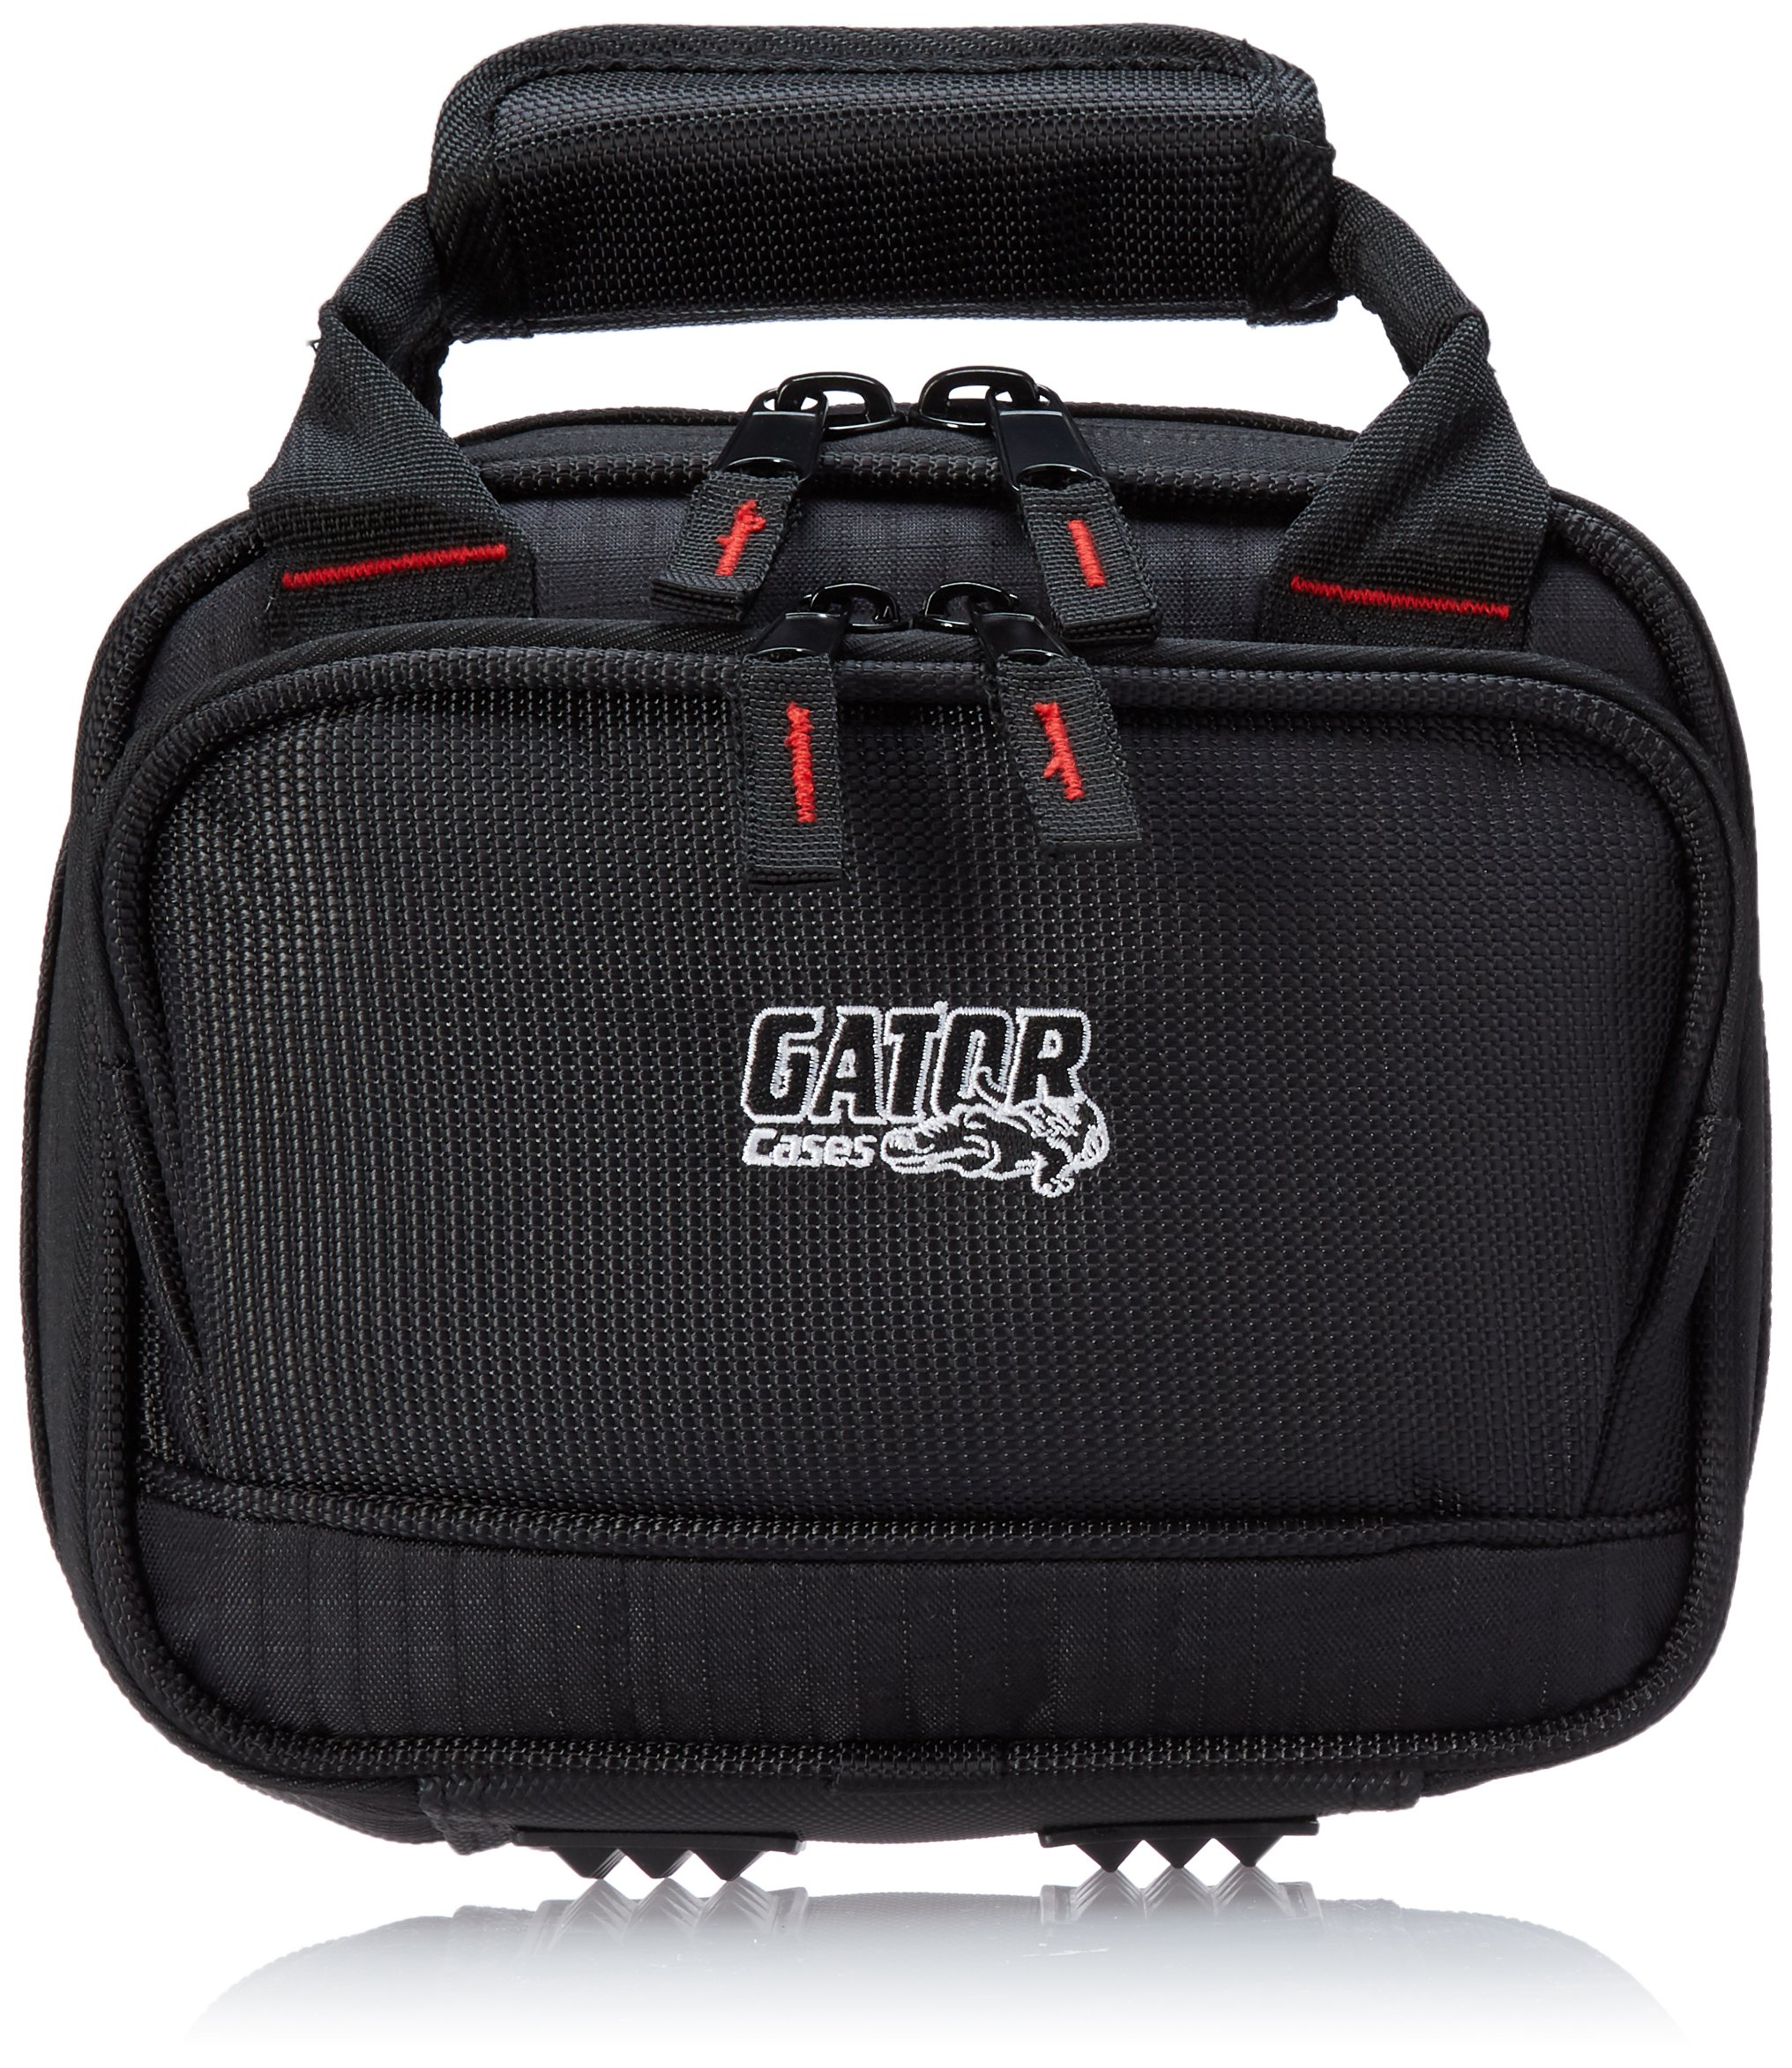 Gator Cases Padded Nylon Mixer/Gear Carry Bag with Removable Strap; 8.25'' x 6.25'' x 2.75'' (G-MIXERBAG-0608)